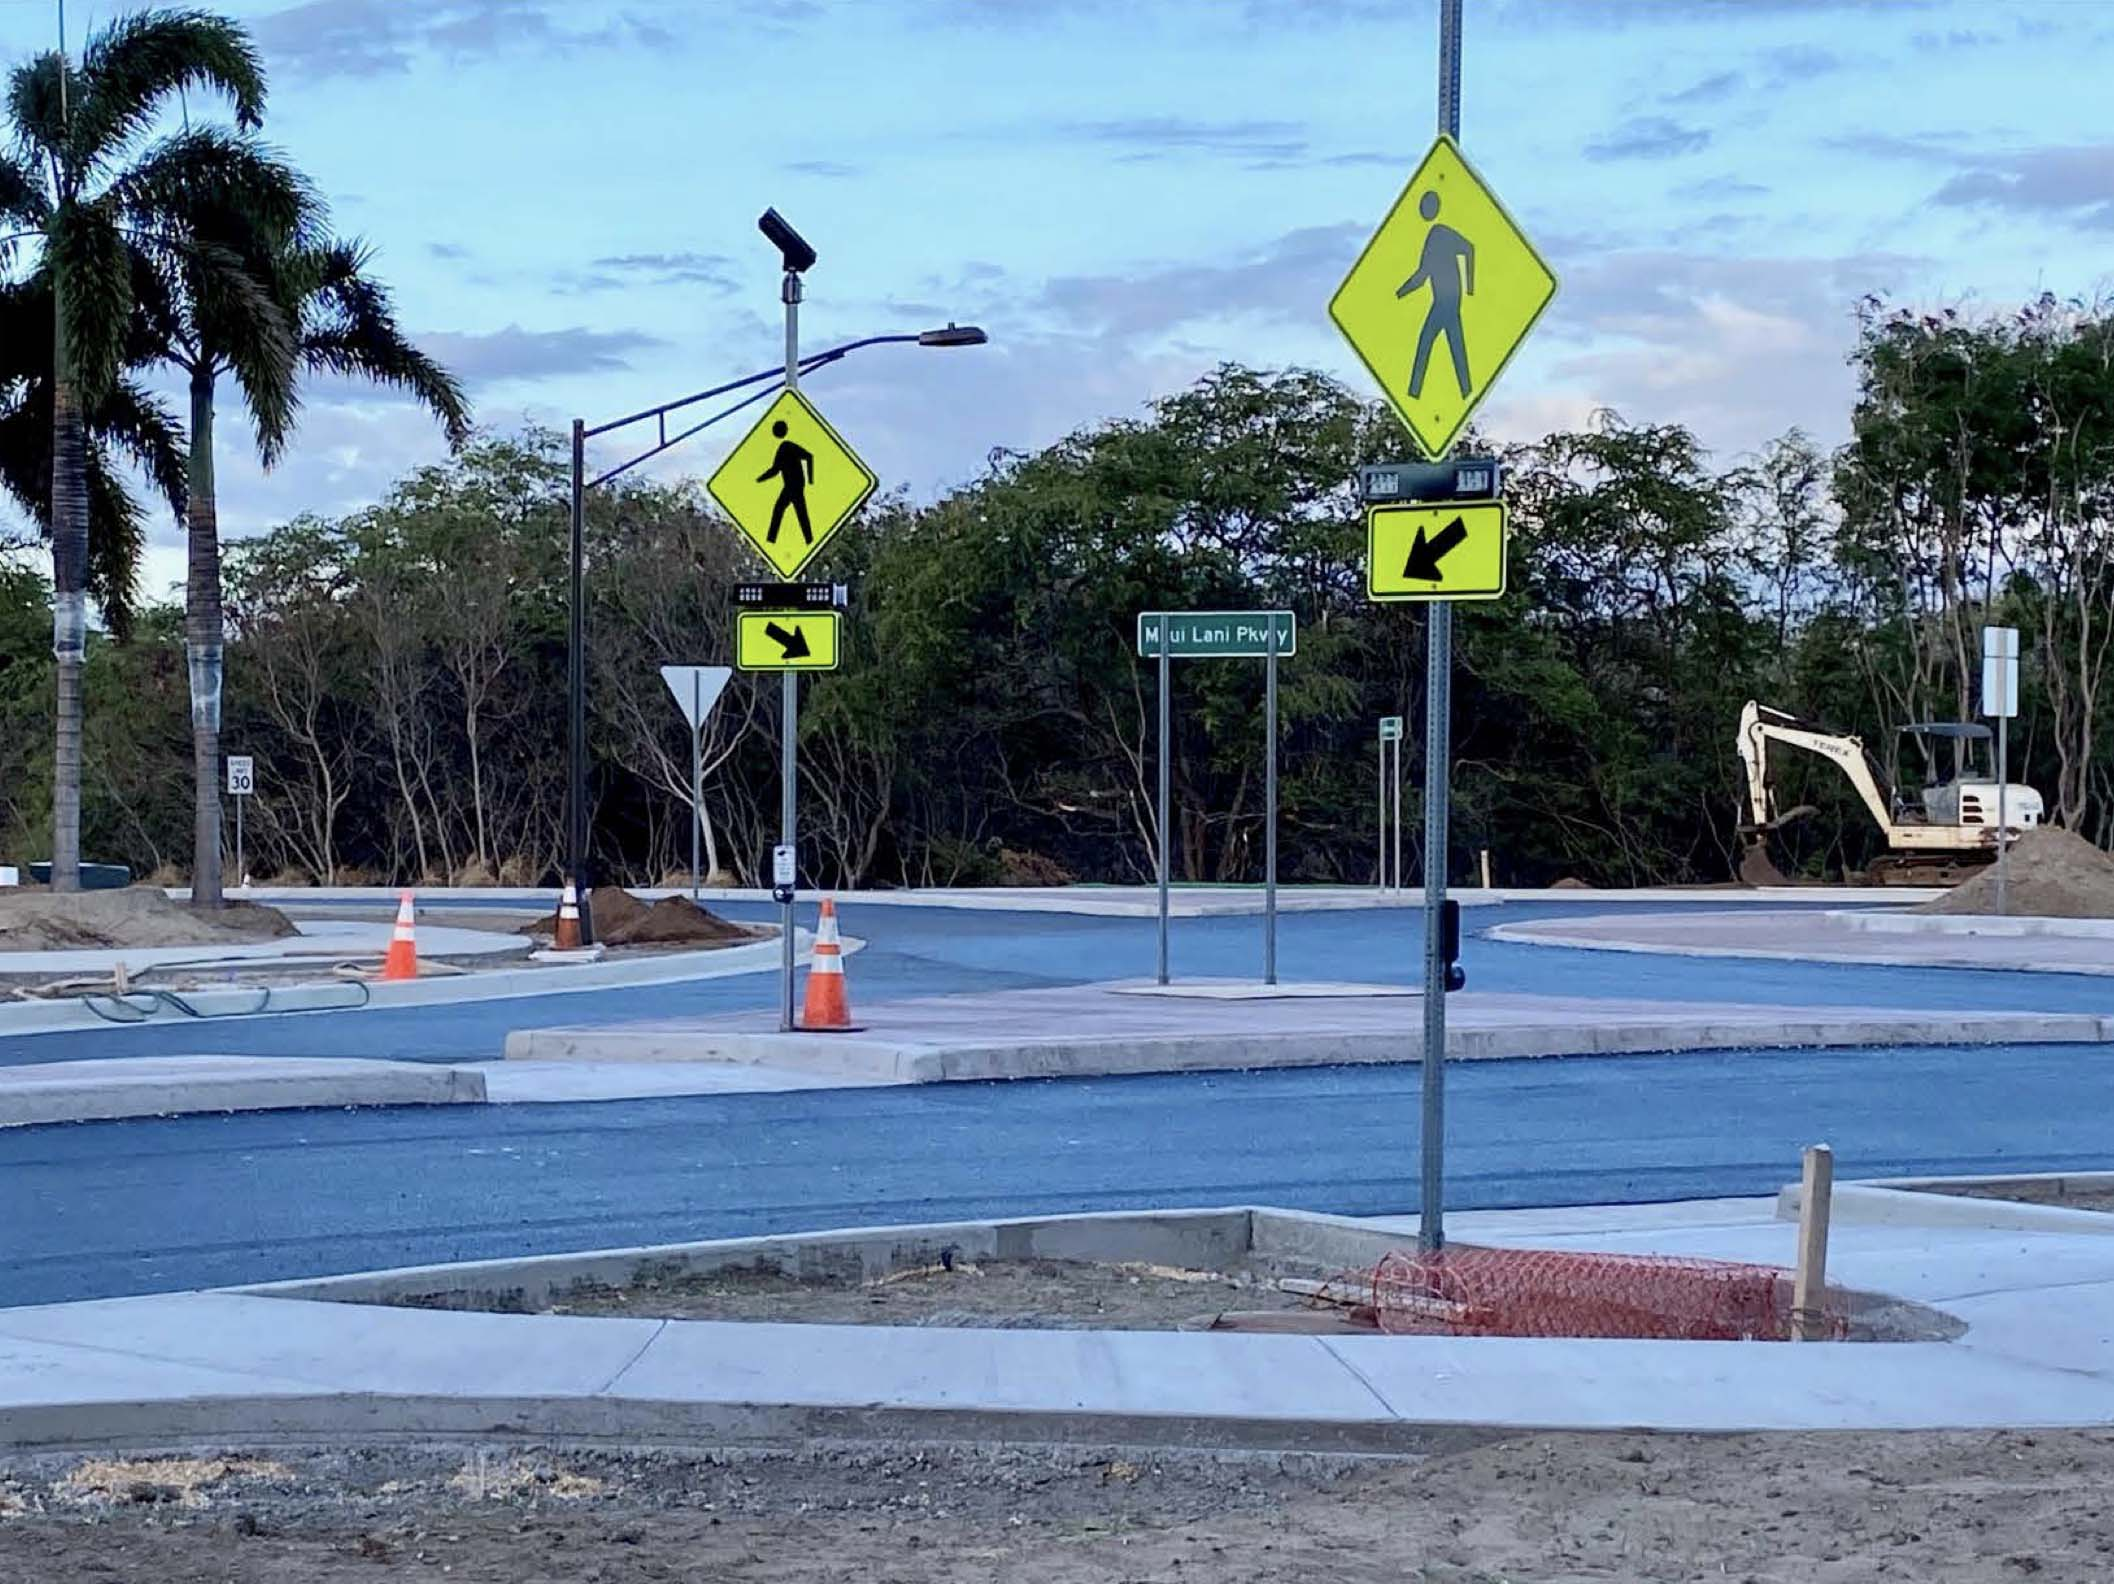 Maui Lani Roundabout to Open Earlier Than Planned, Ahead of School